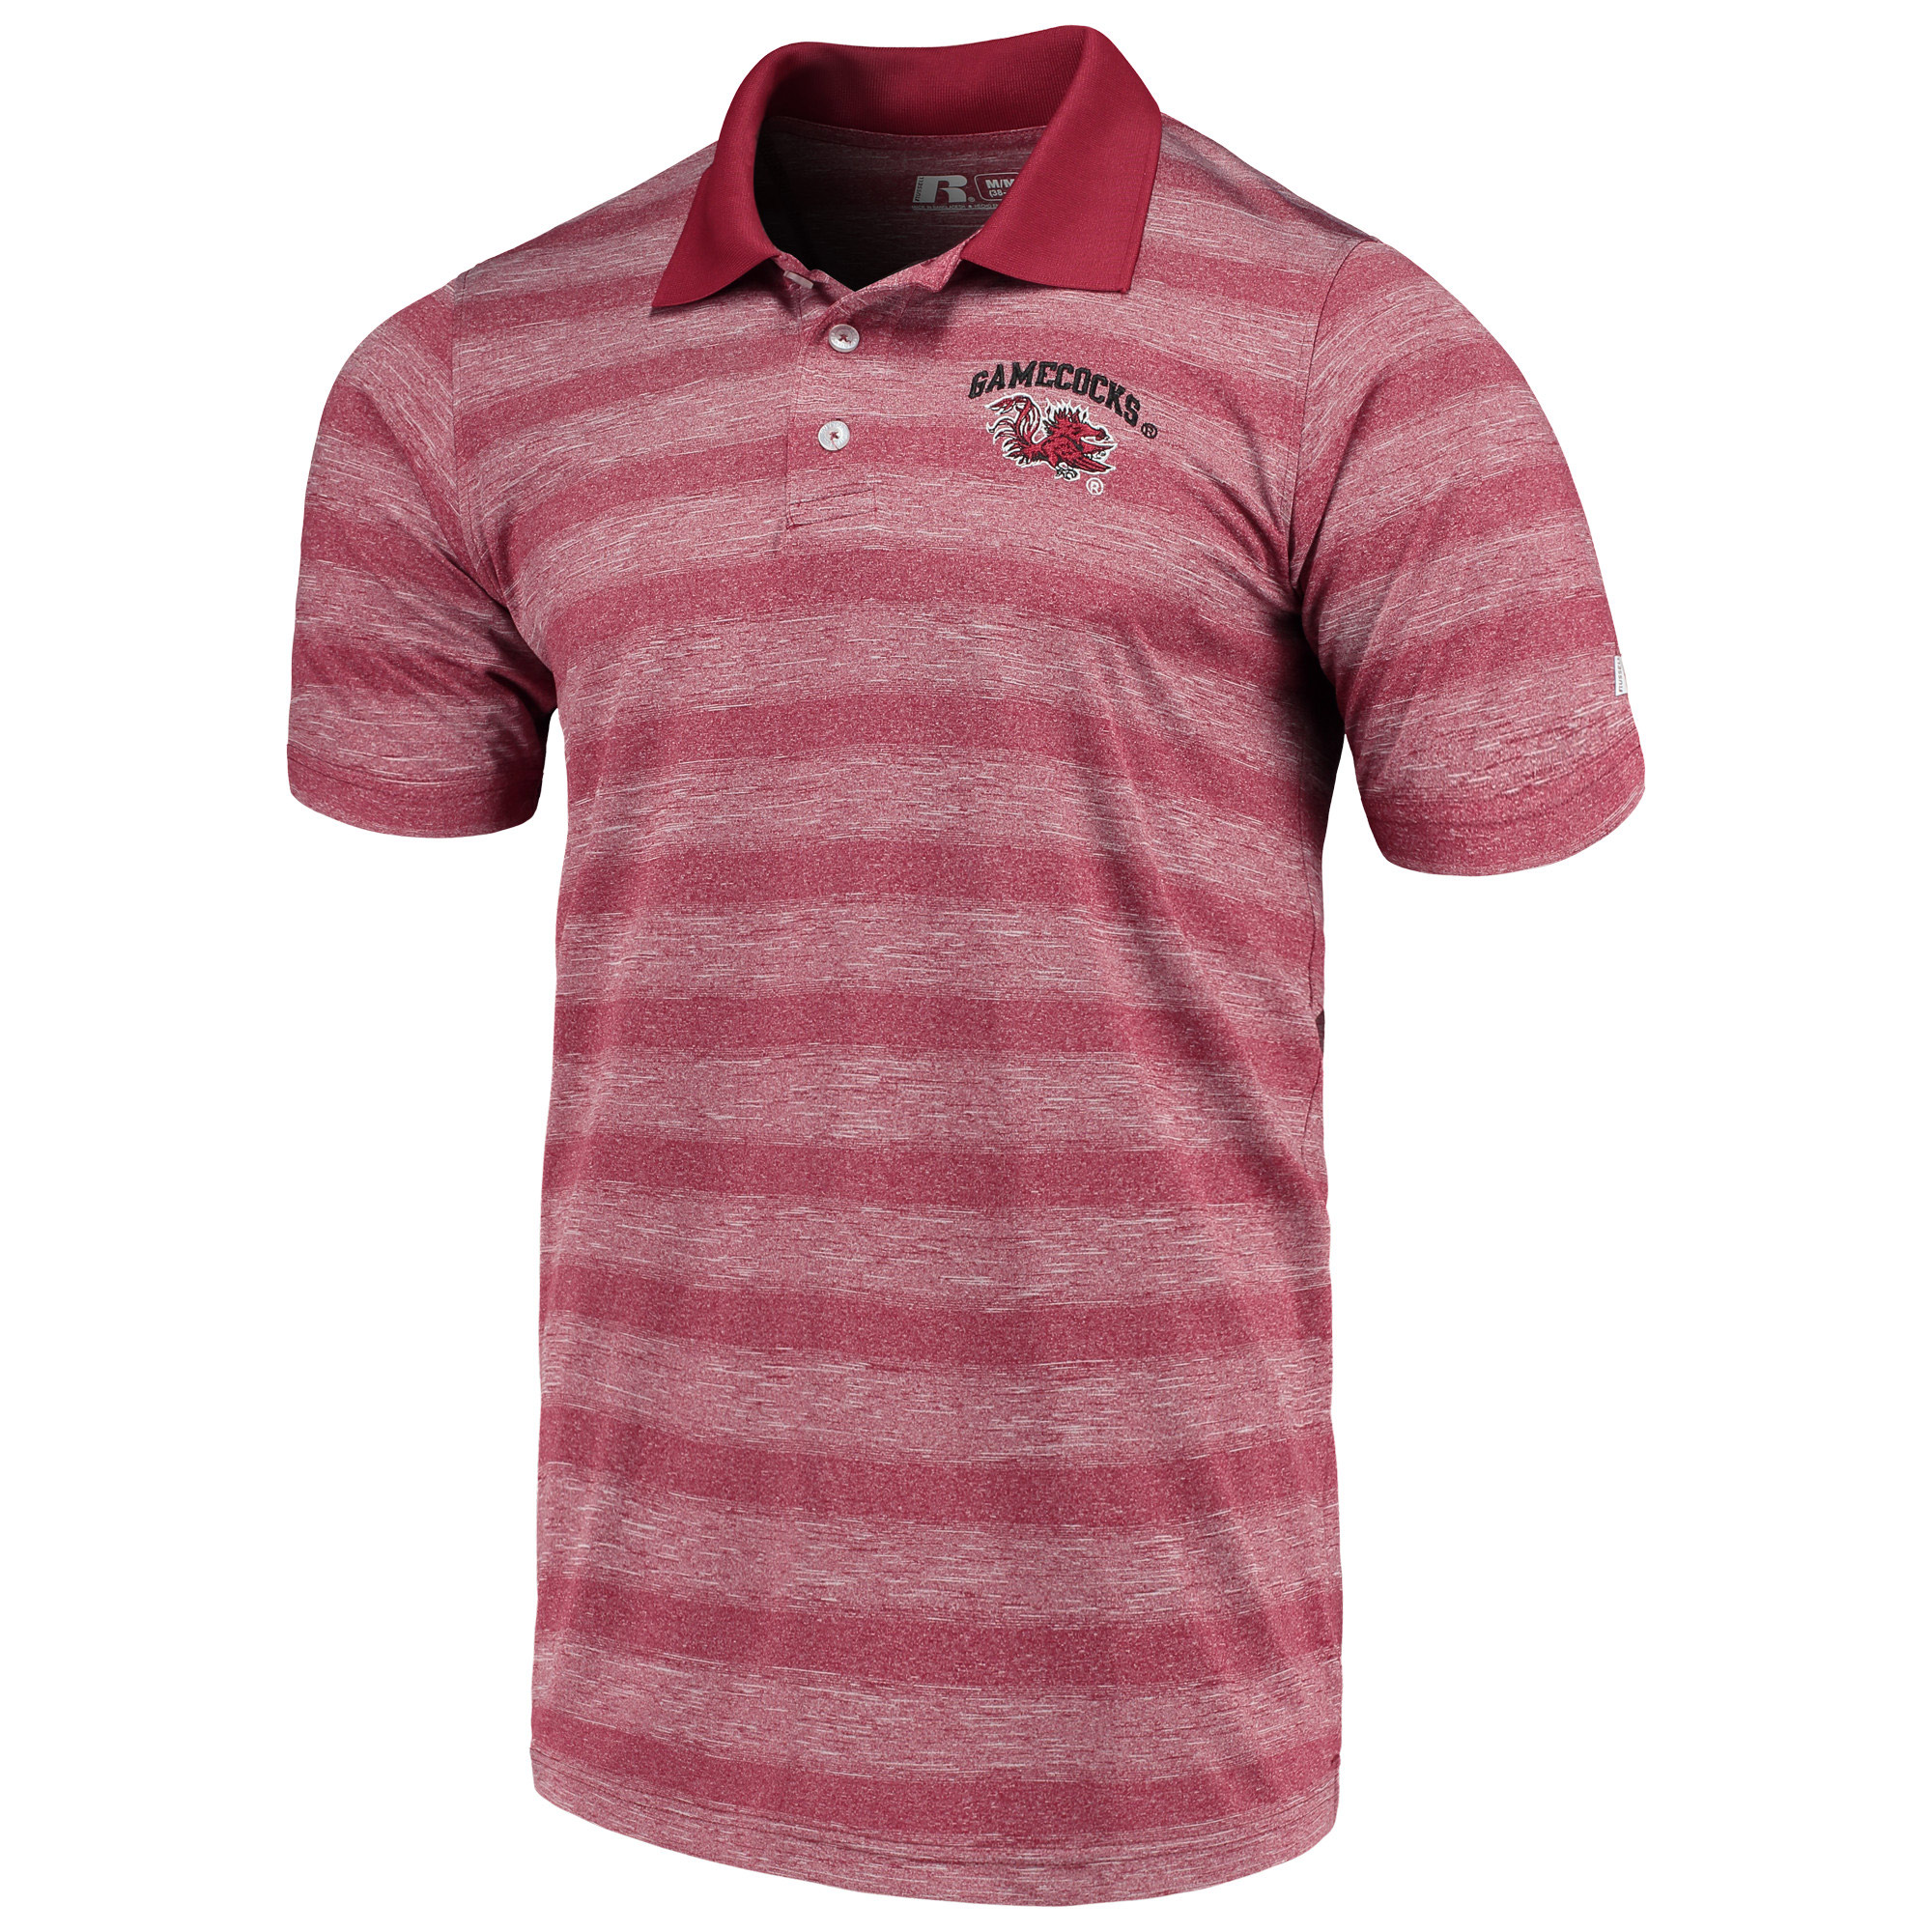 Men's Russell Garnet South Carolina Gamecocks Classic Striped Polo